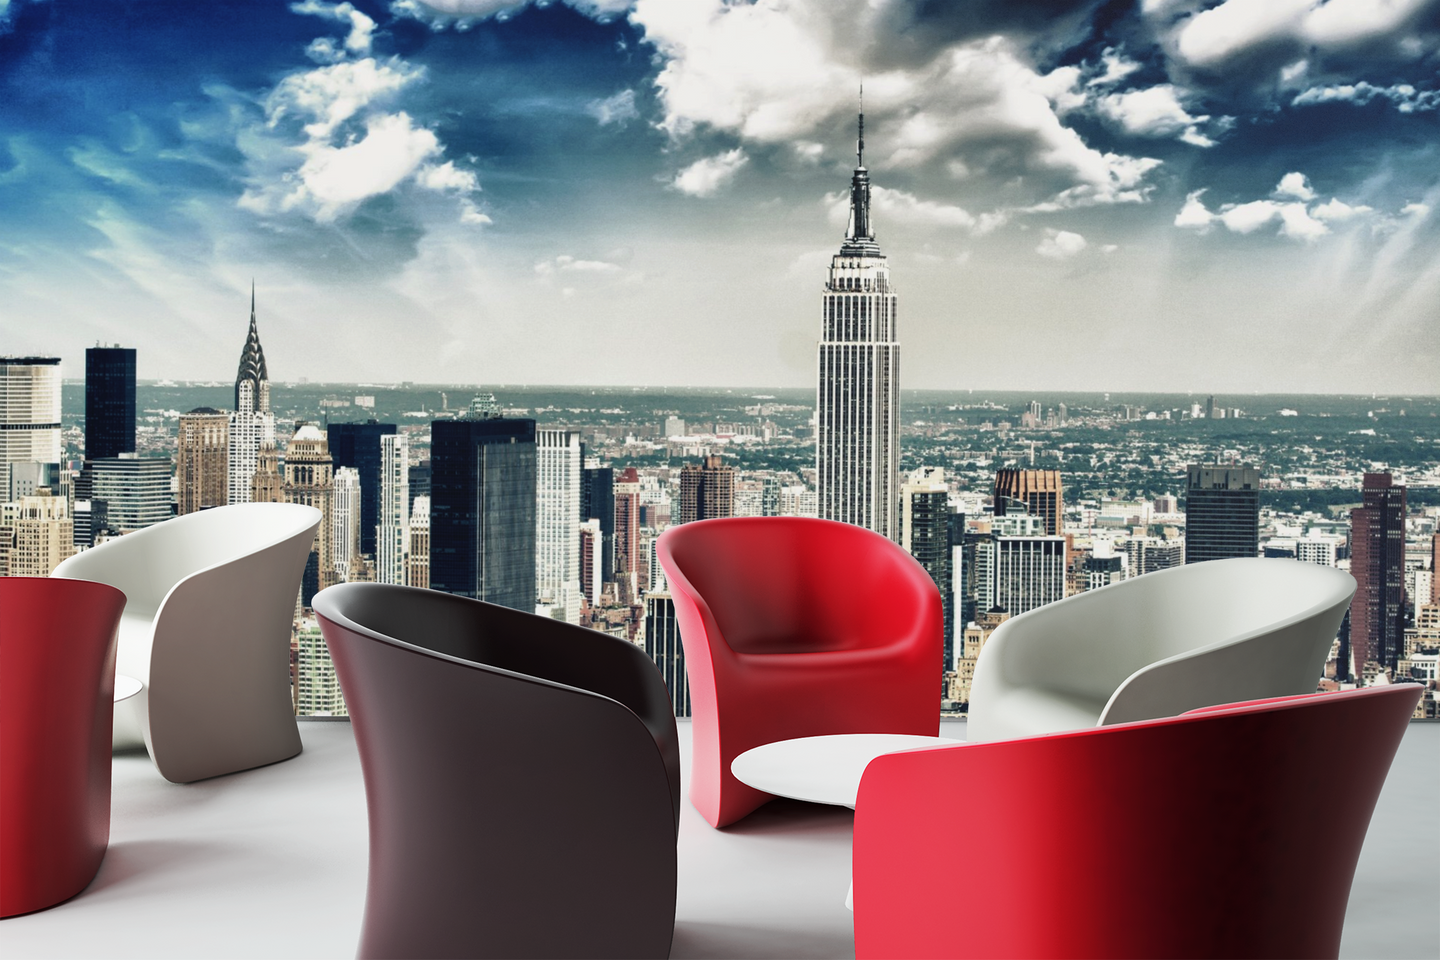 Beautiful cloud in New York - 0115 - Wall Murals Printing - wall art